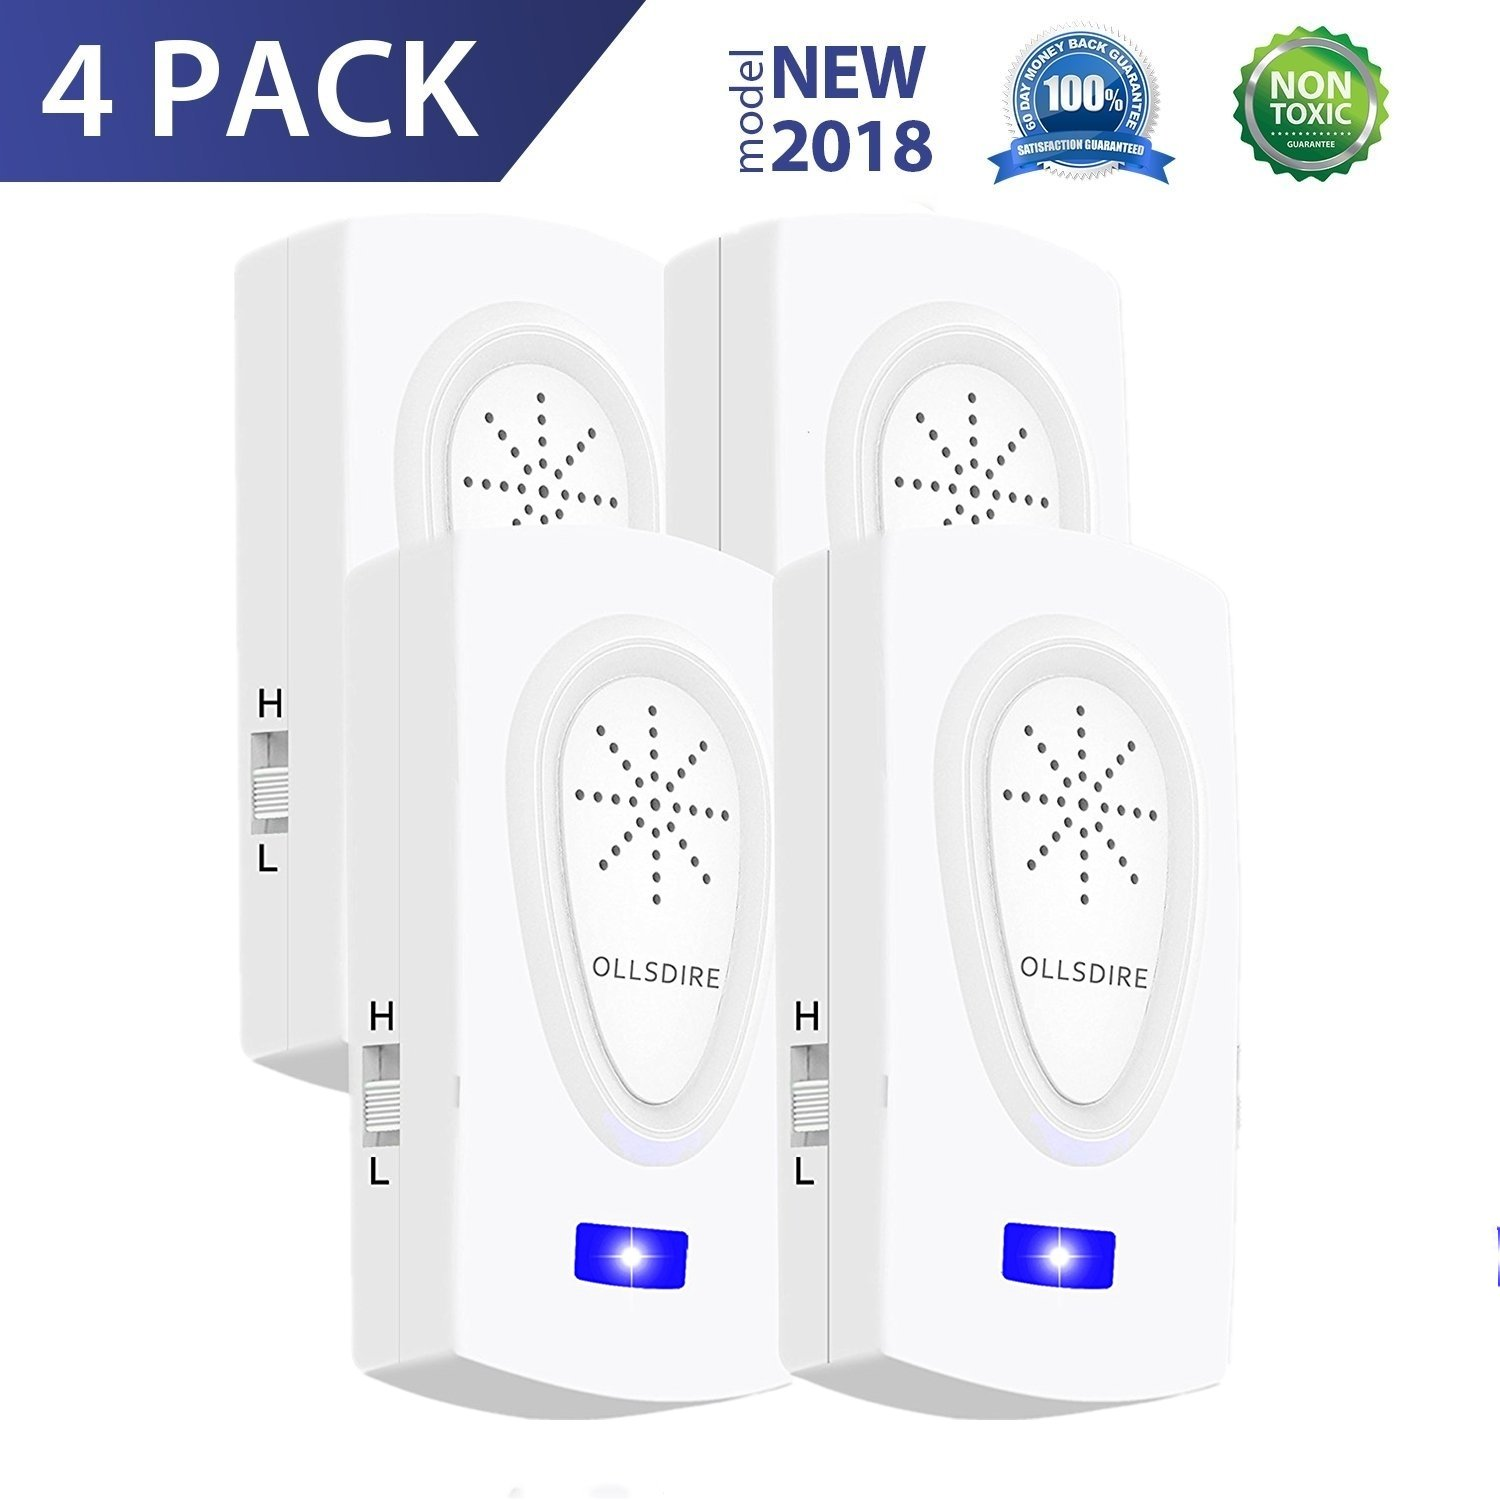 GAOAG Effective Ultrasonic Mosquito Repellent Odorless Non-Toxic Portable Pest Control Repeller Anti Insect Home/Warehouse/Garden